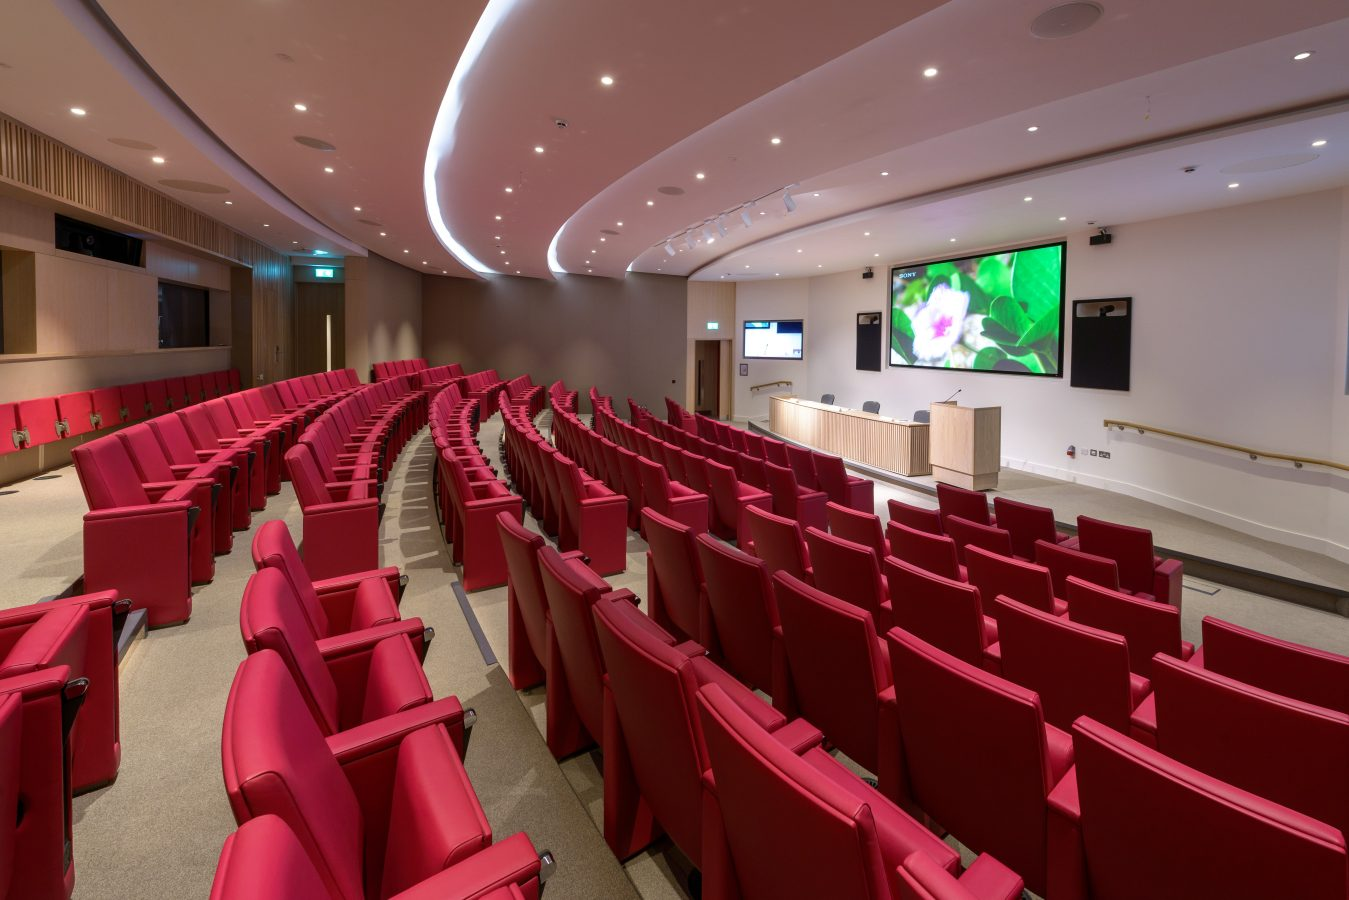 Audio Visual Integration for Corporate Lecture Theatre | Snelling